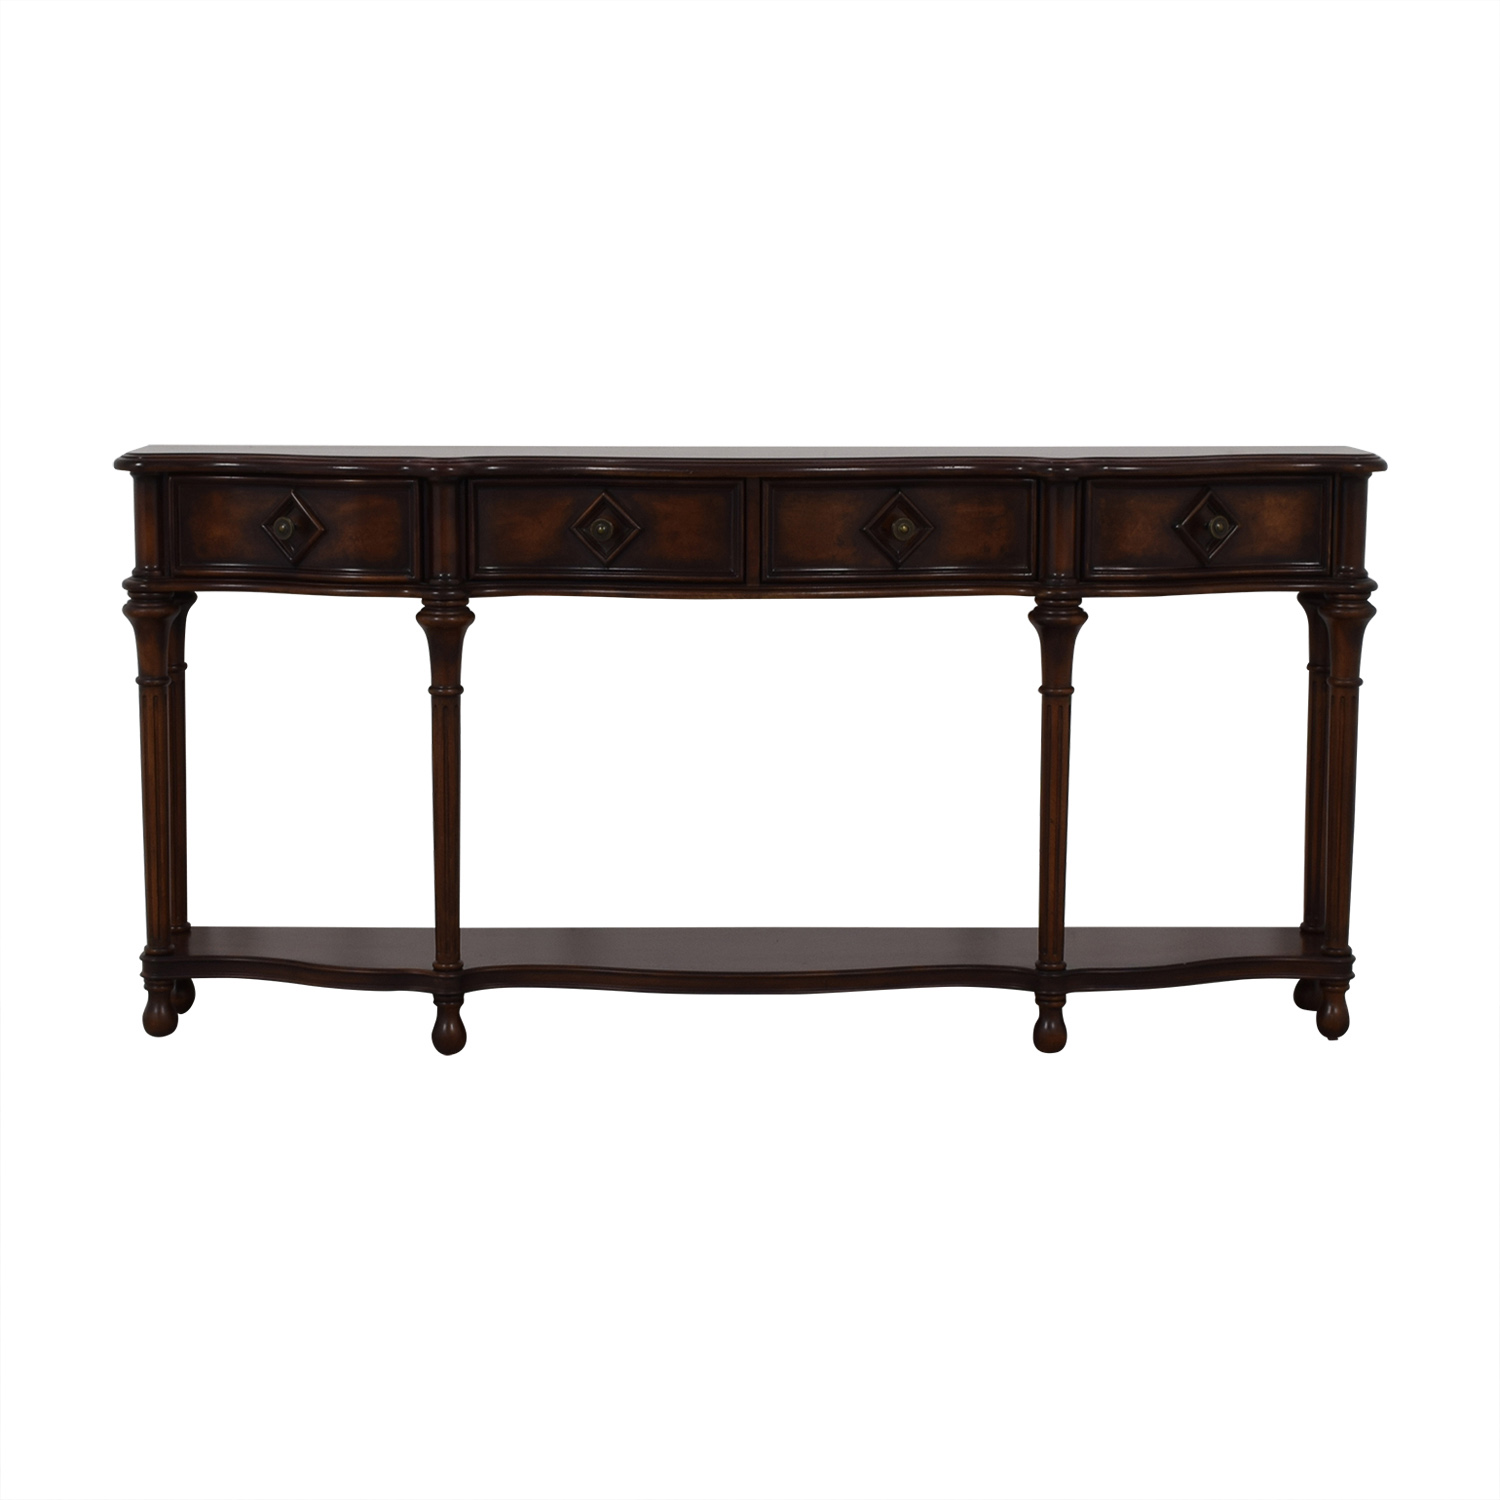 Hooker Furniture Hooker Furniture Four-Drawer Console Table price